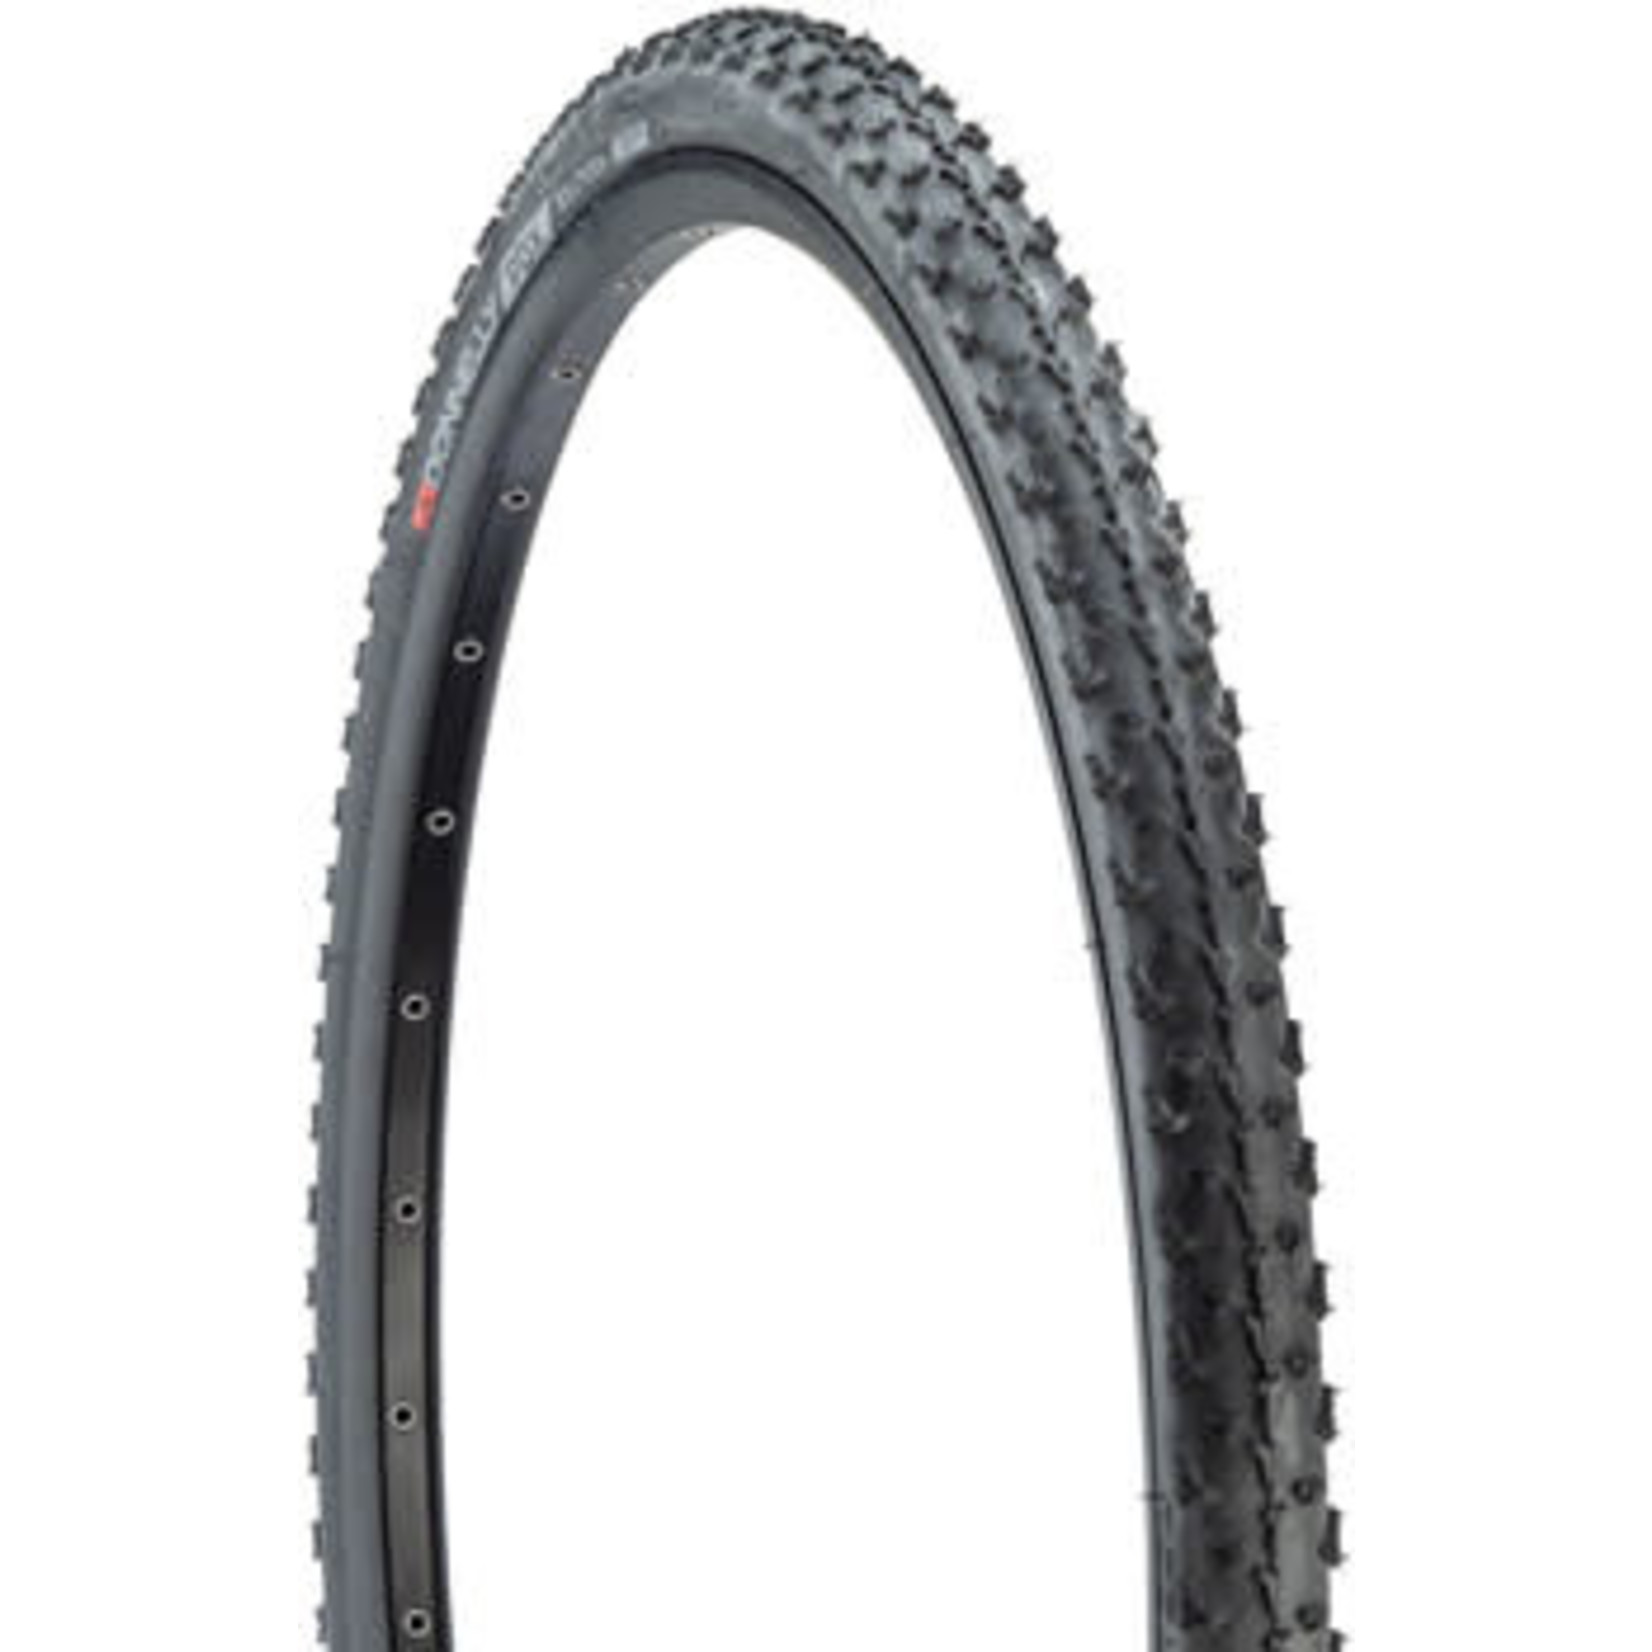 Donnelly Sports Donnelly Sports PDX Tire - 700 x 33, Tubeless, Folding, Black, 120tpi